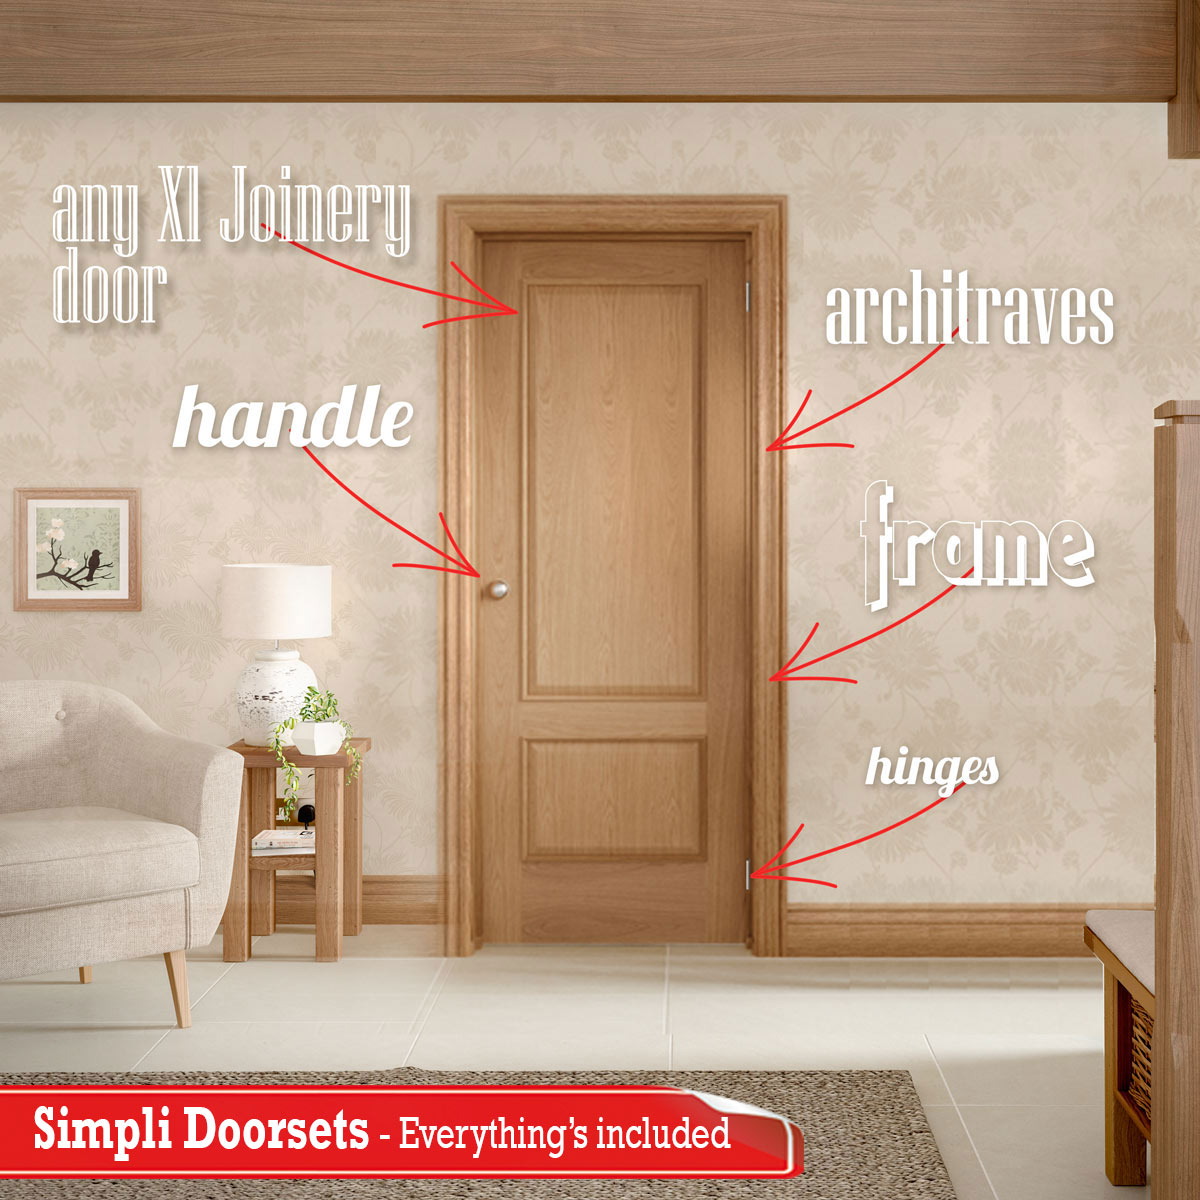 Simpli means one word for doorsets